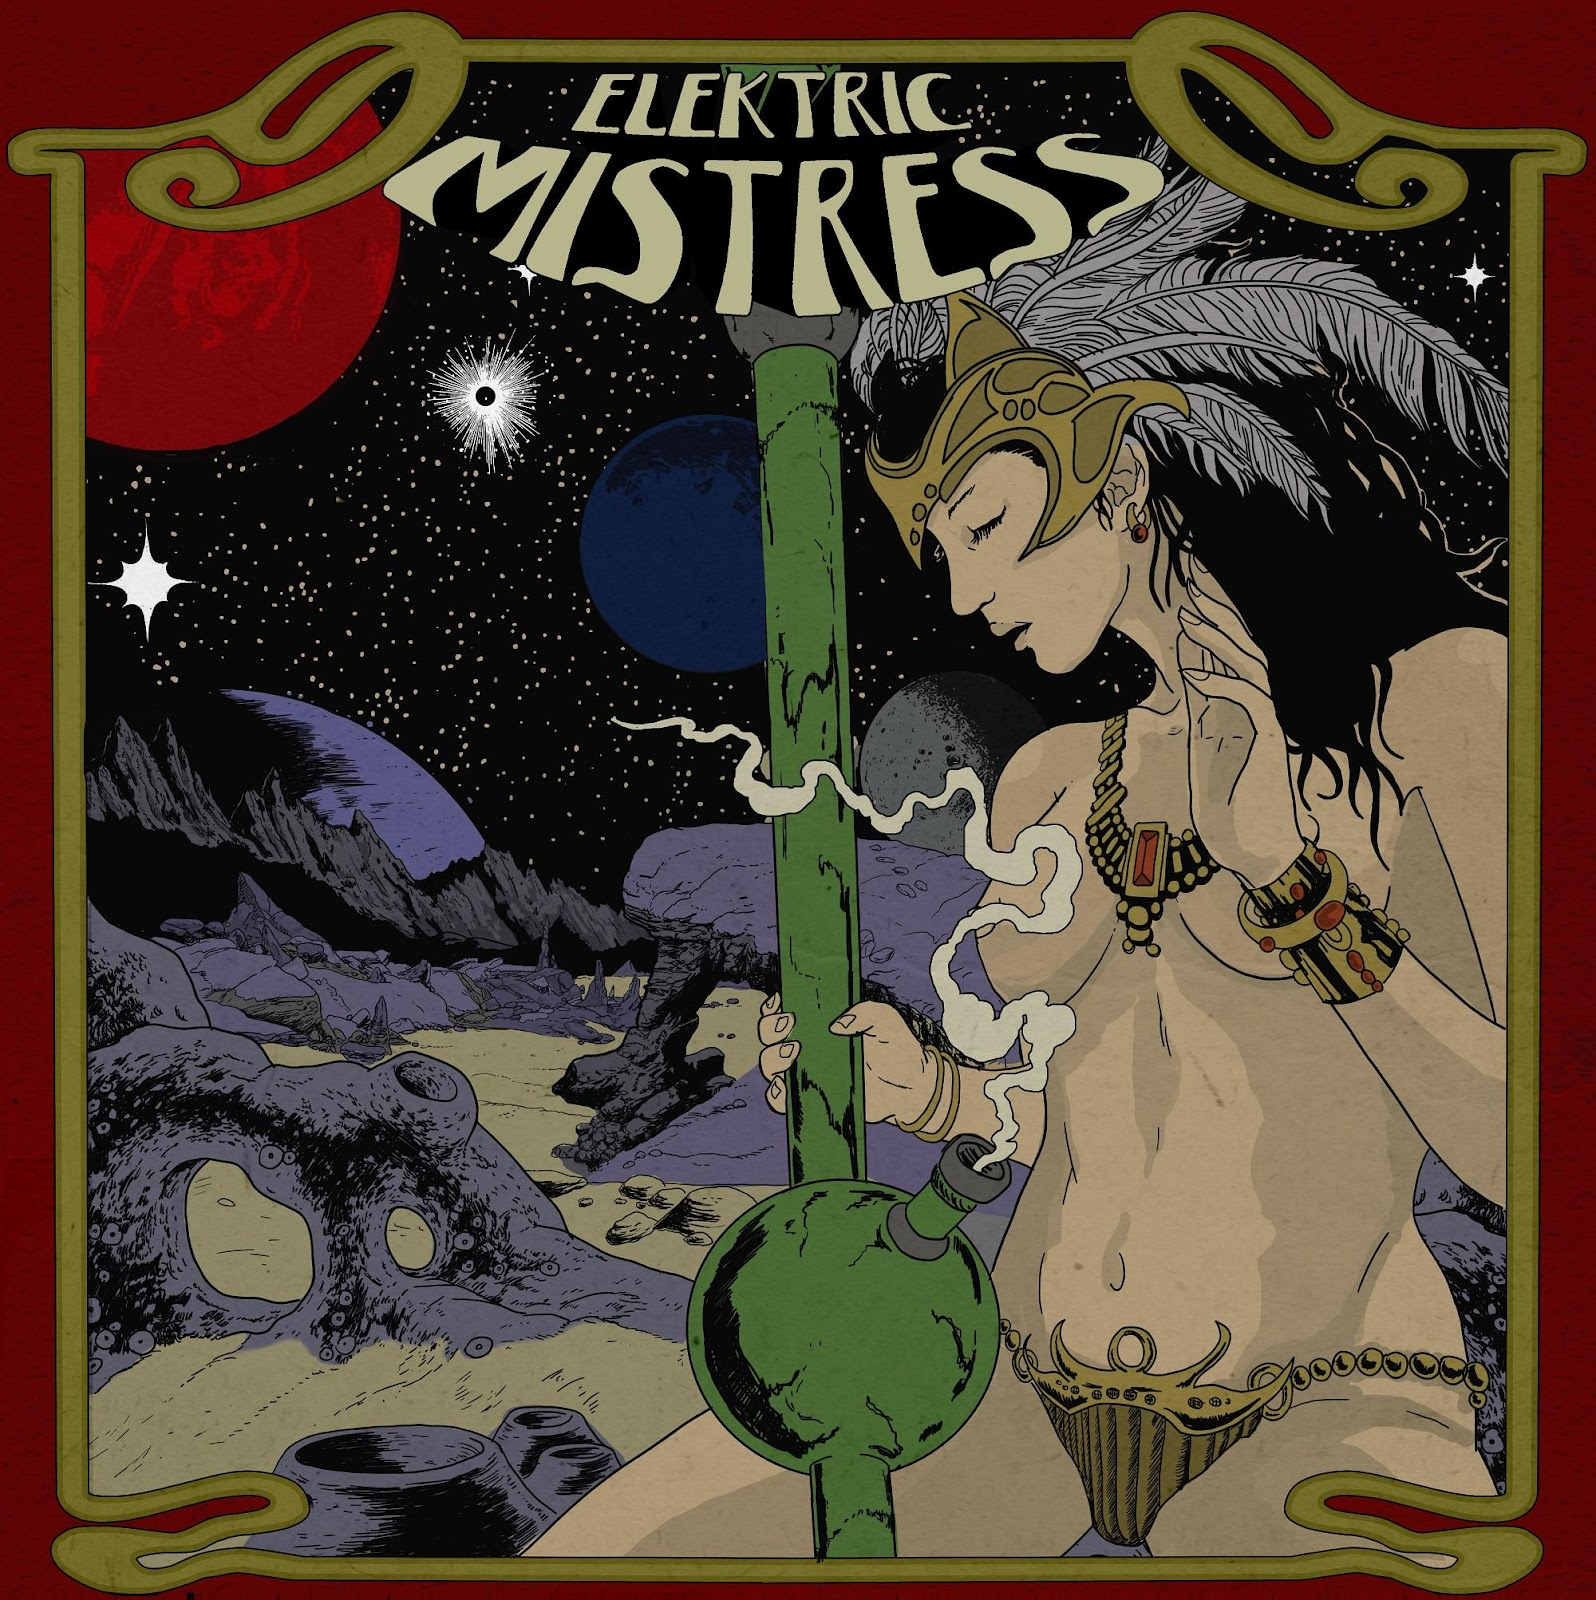 https://ssl.fbridgecdn.net/users_files/43/57443/elektric_mistress_-_ep_front_cover_web.jpg